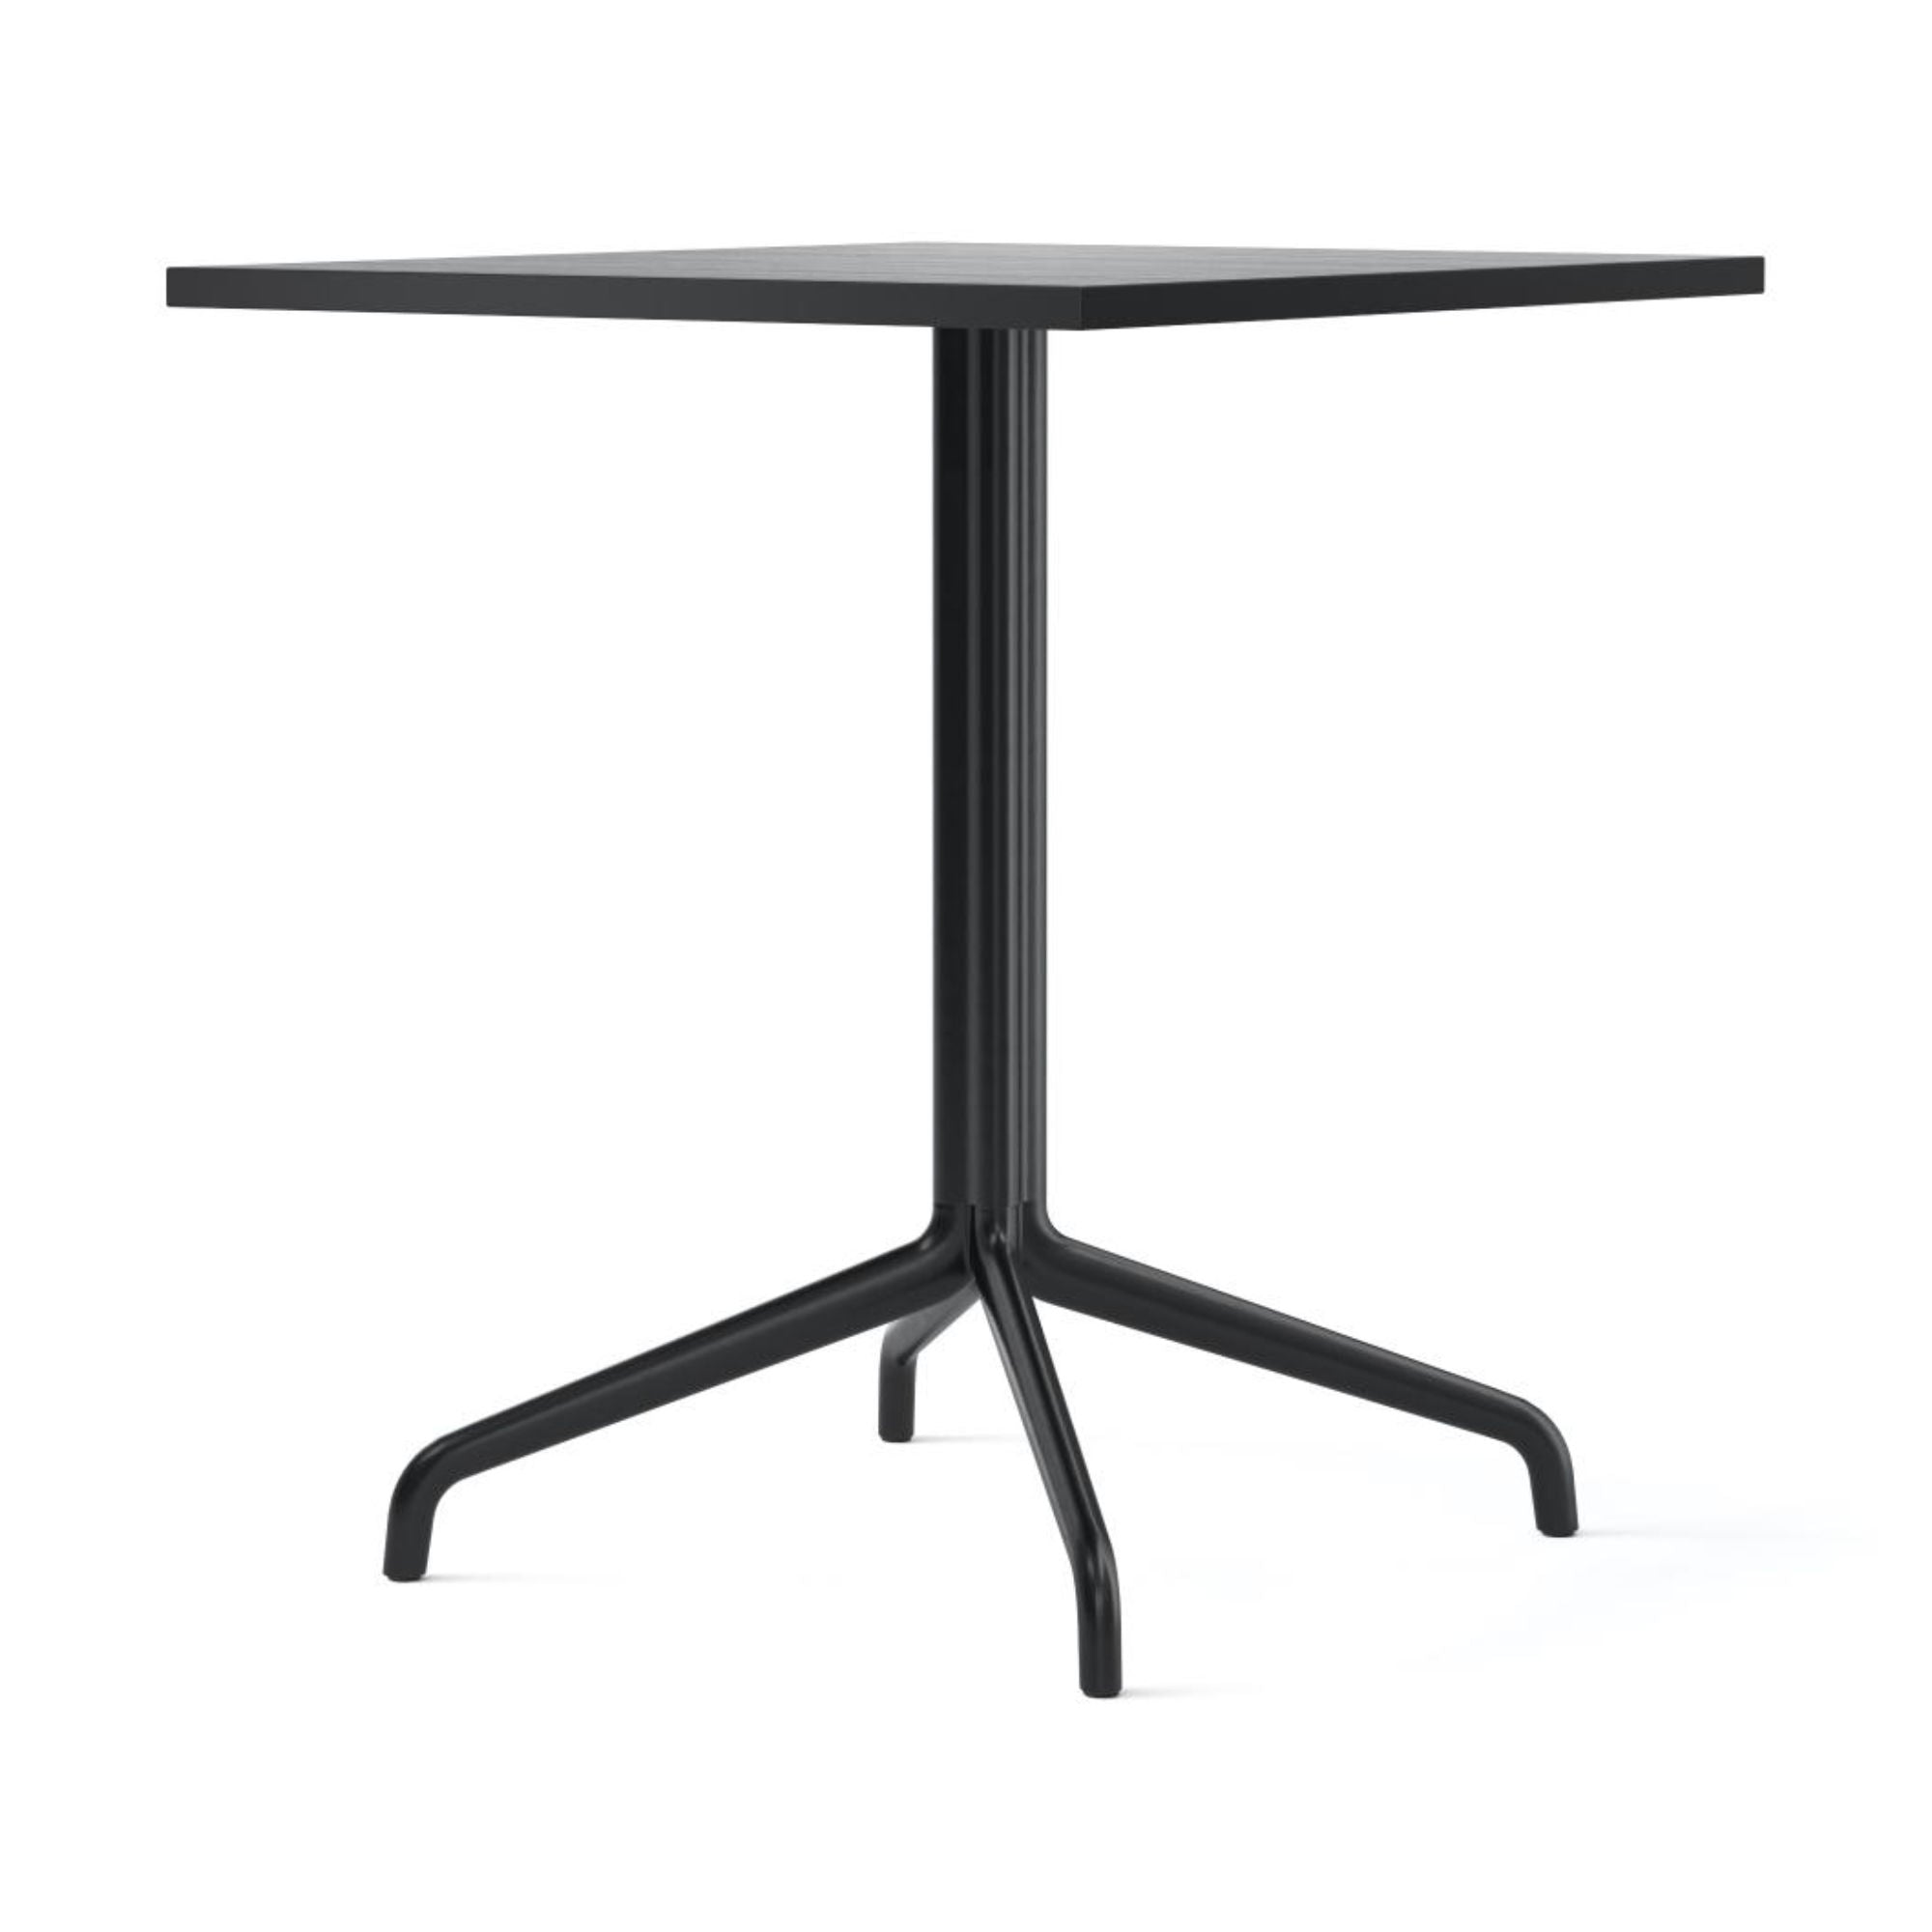 Menu Harbour Column Dining Table Star Base 70x60cm , Black Steel-Black Oak